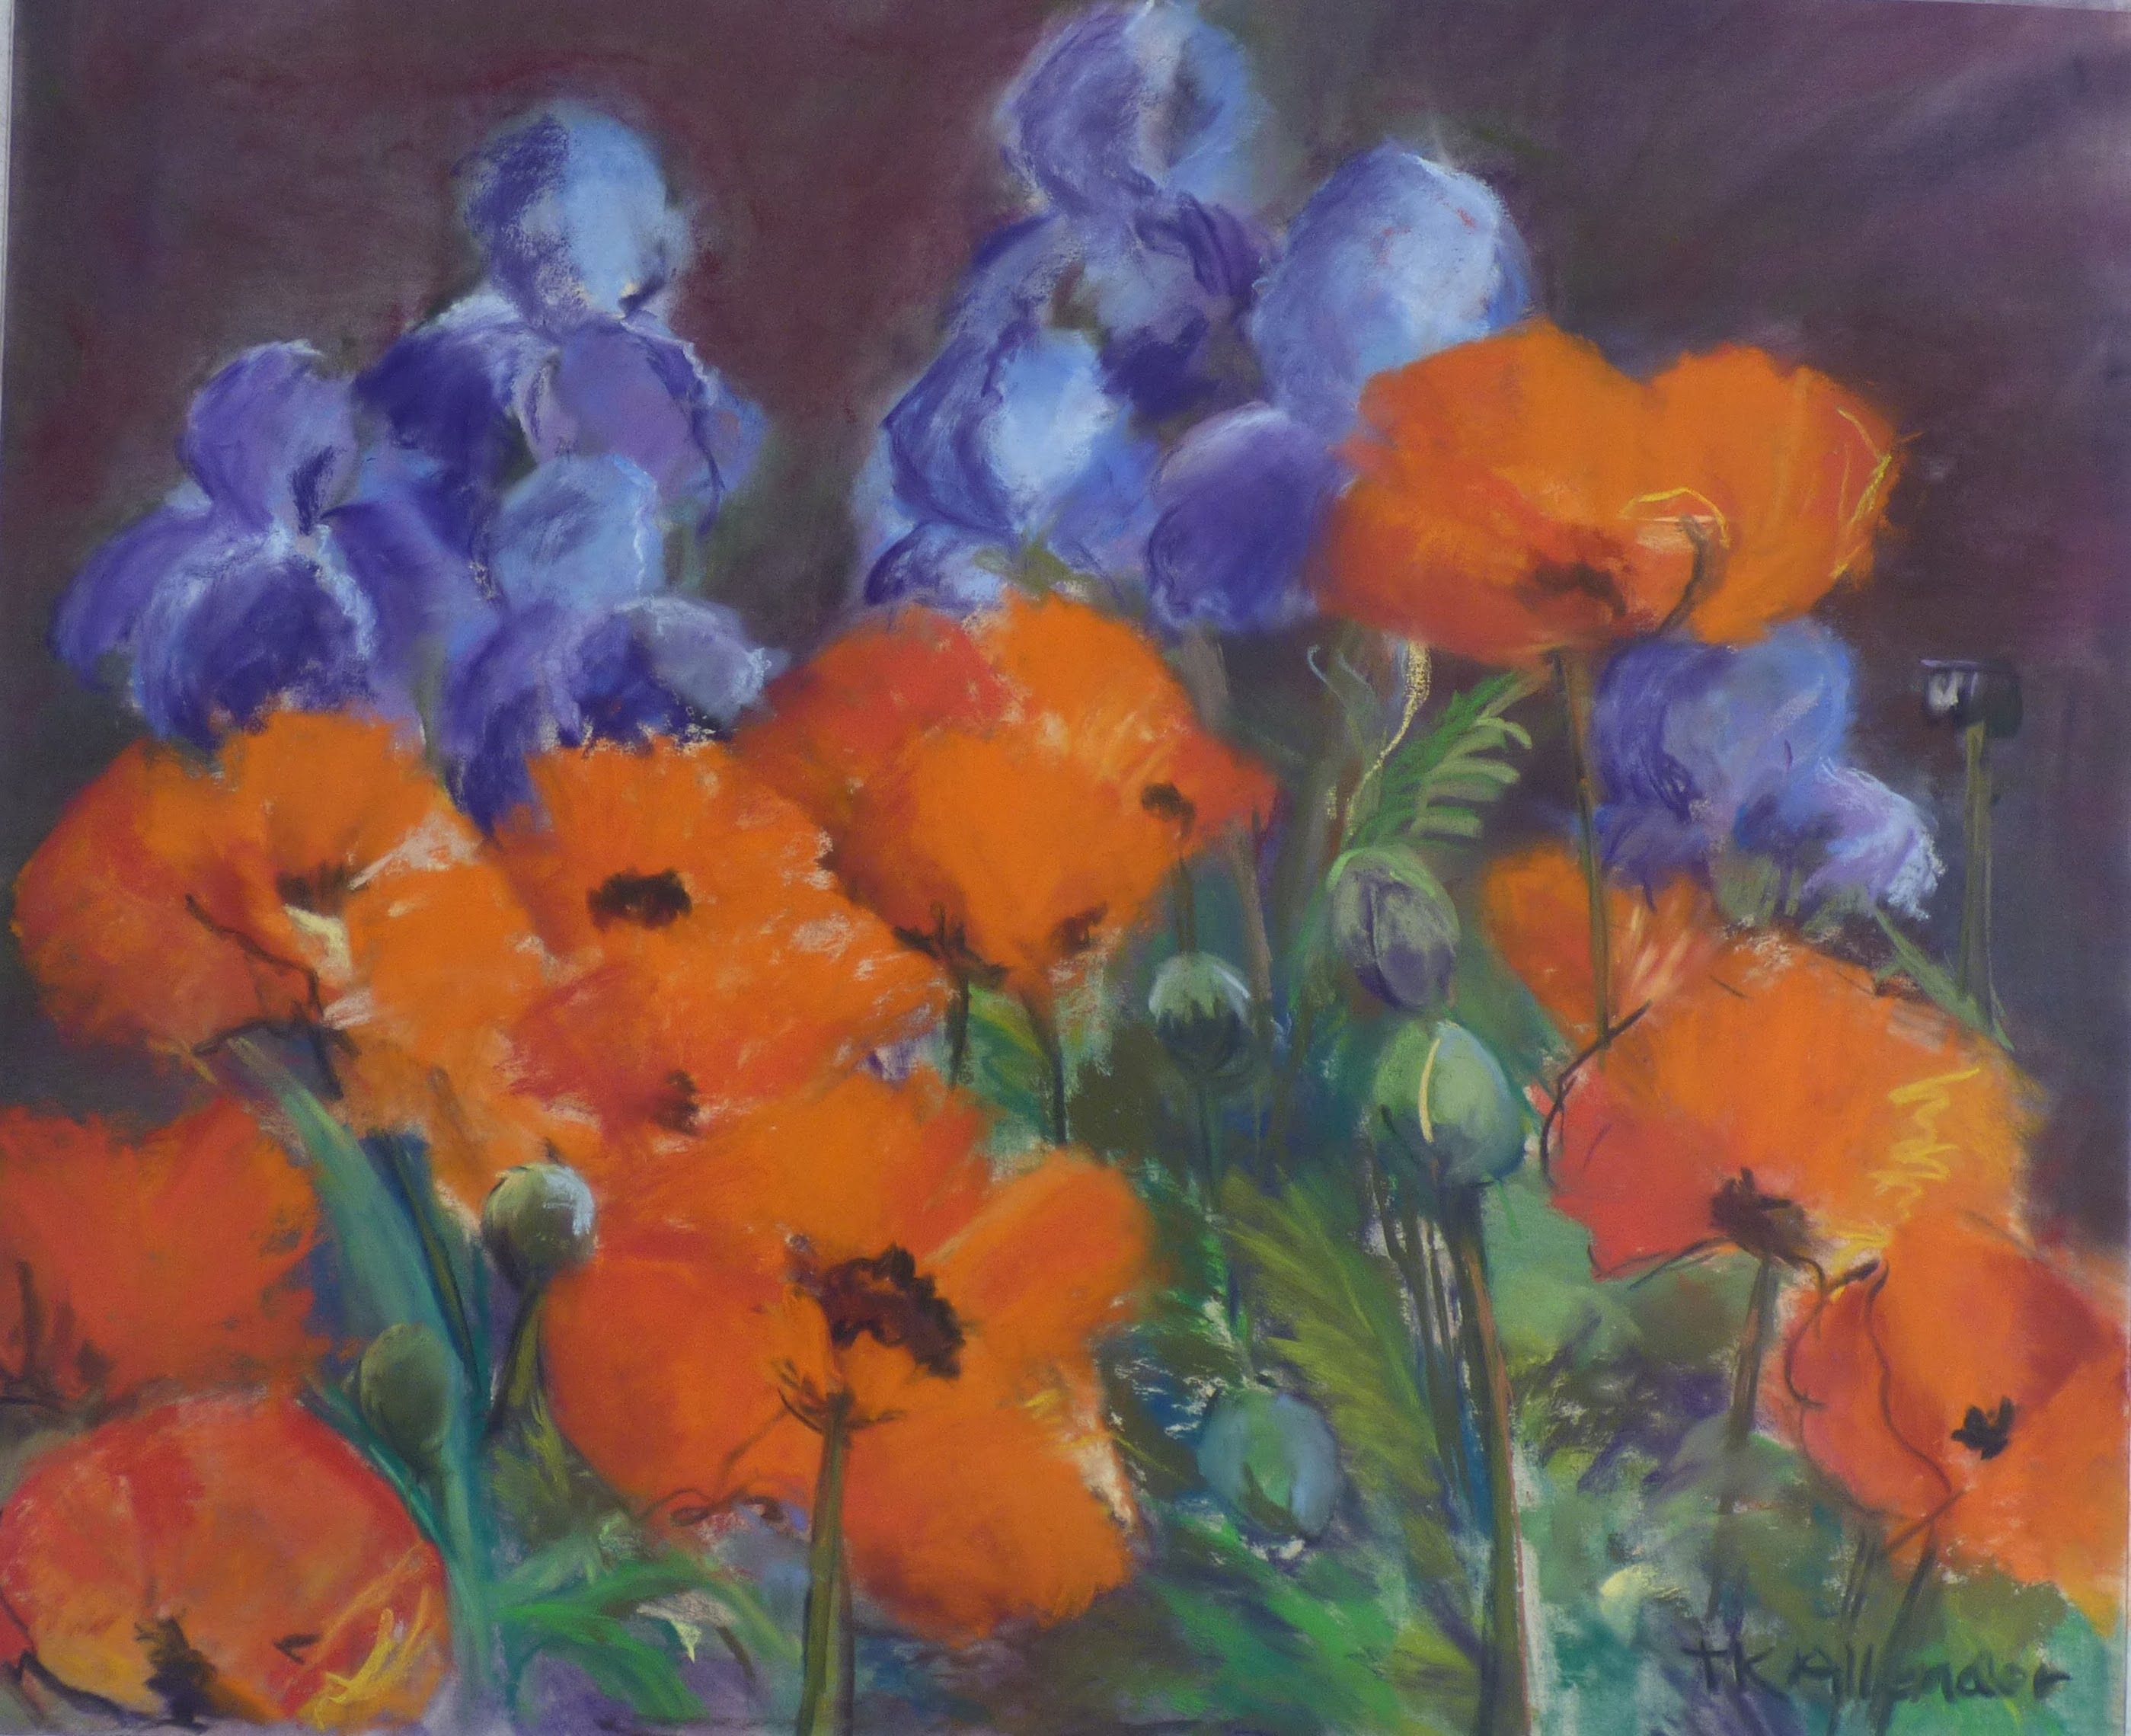 Poppies and Iris - 16 x 20